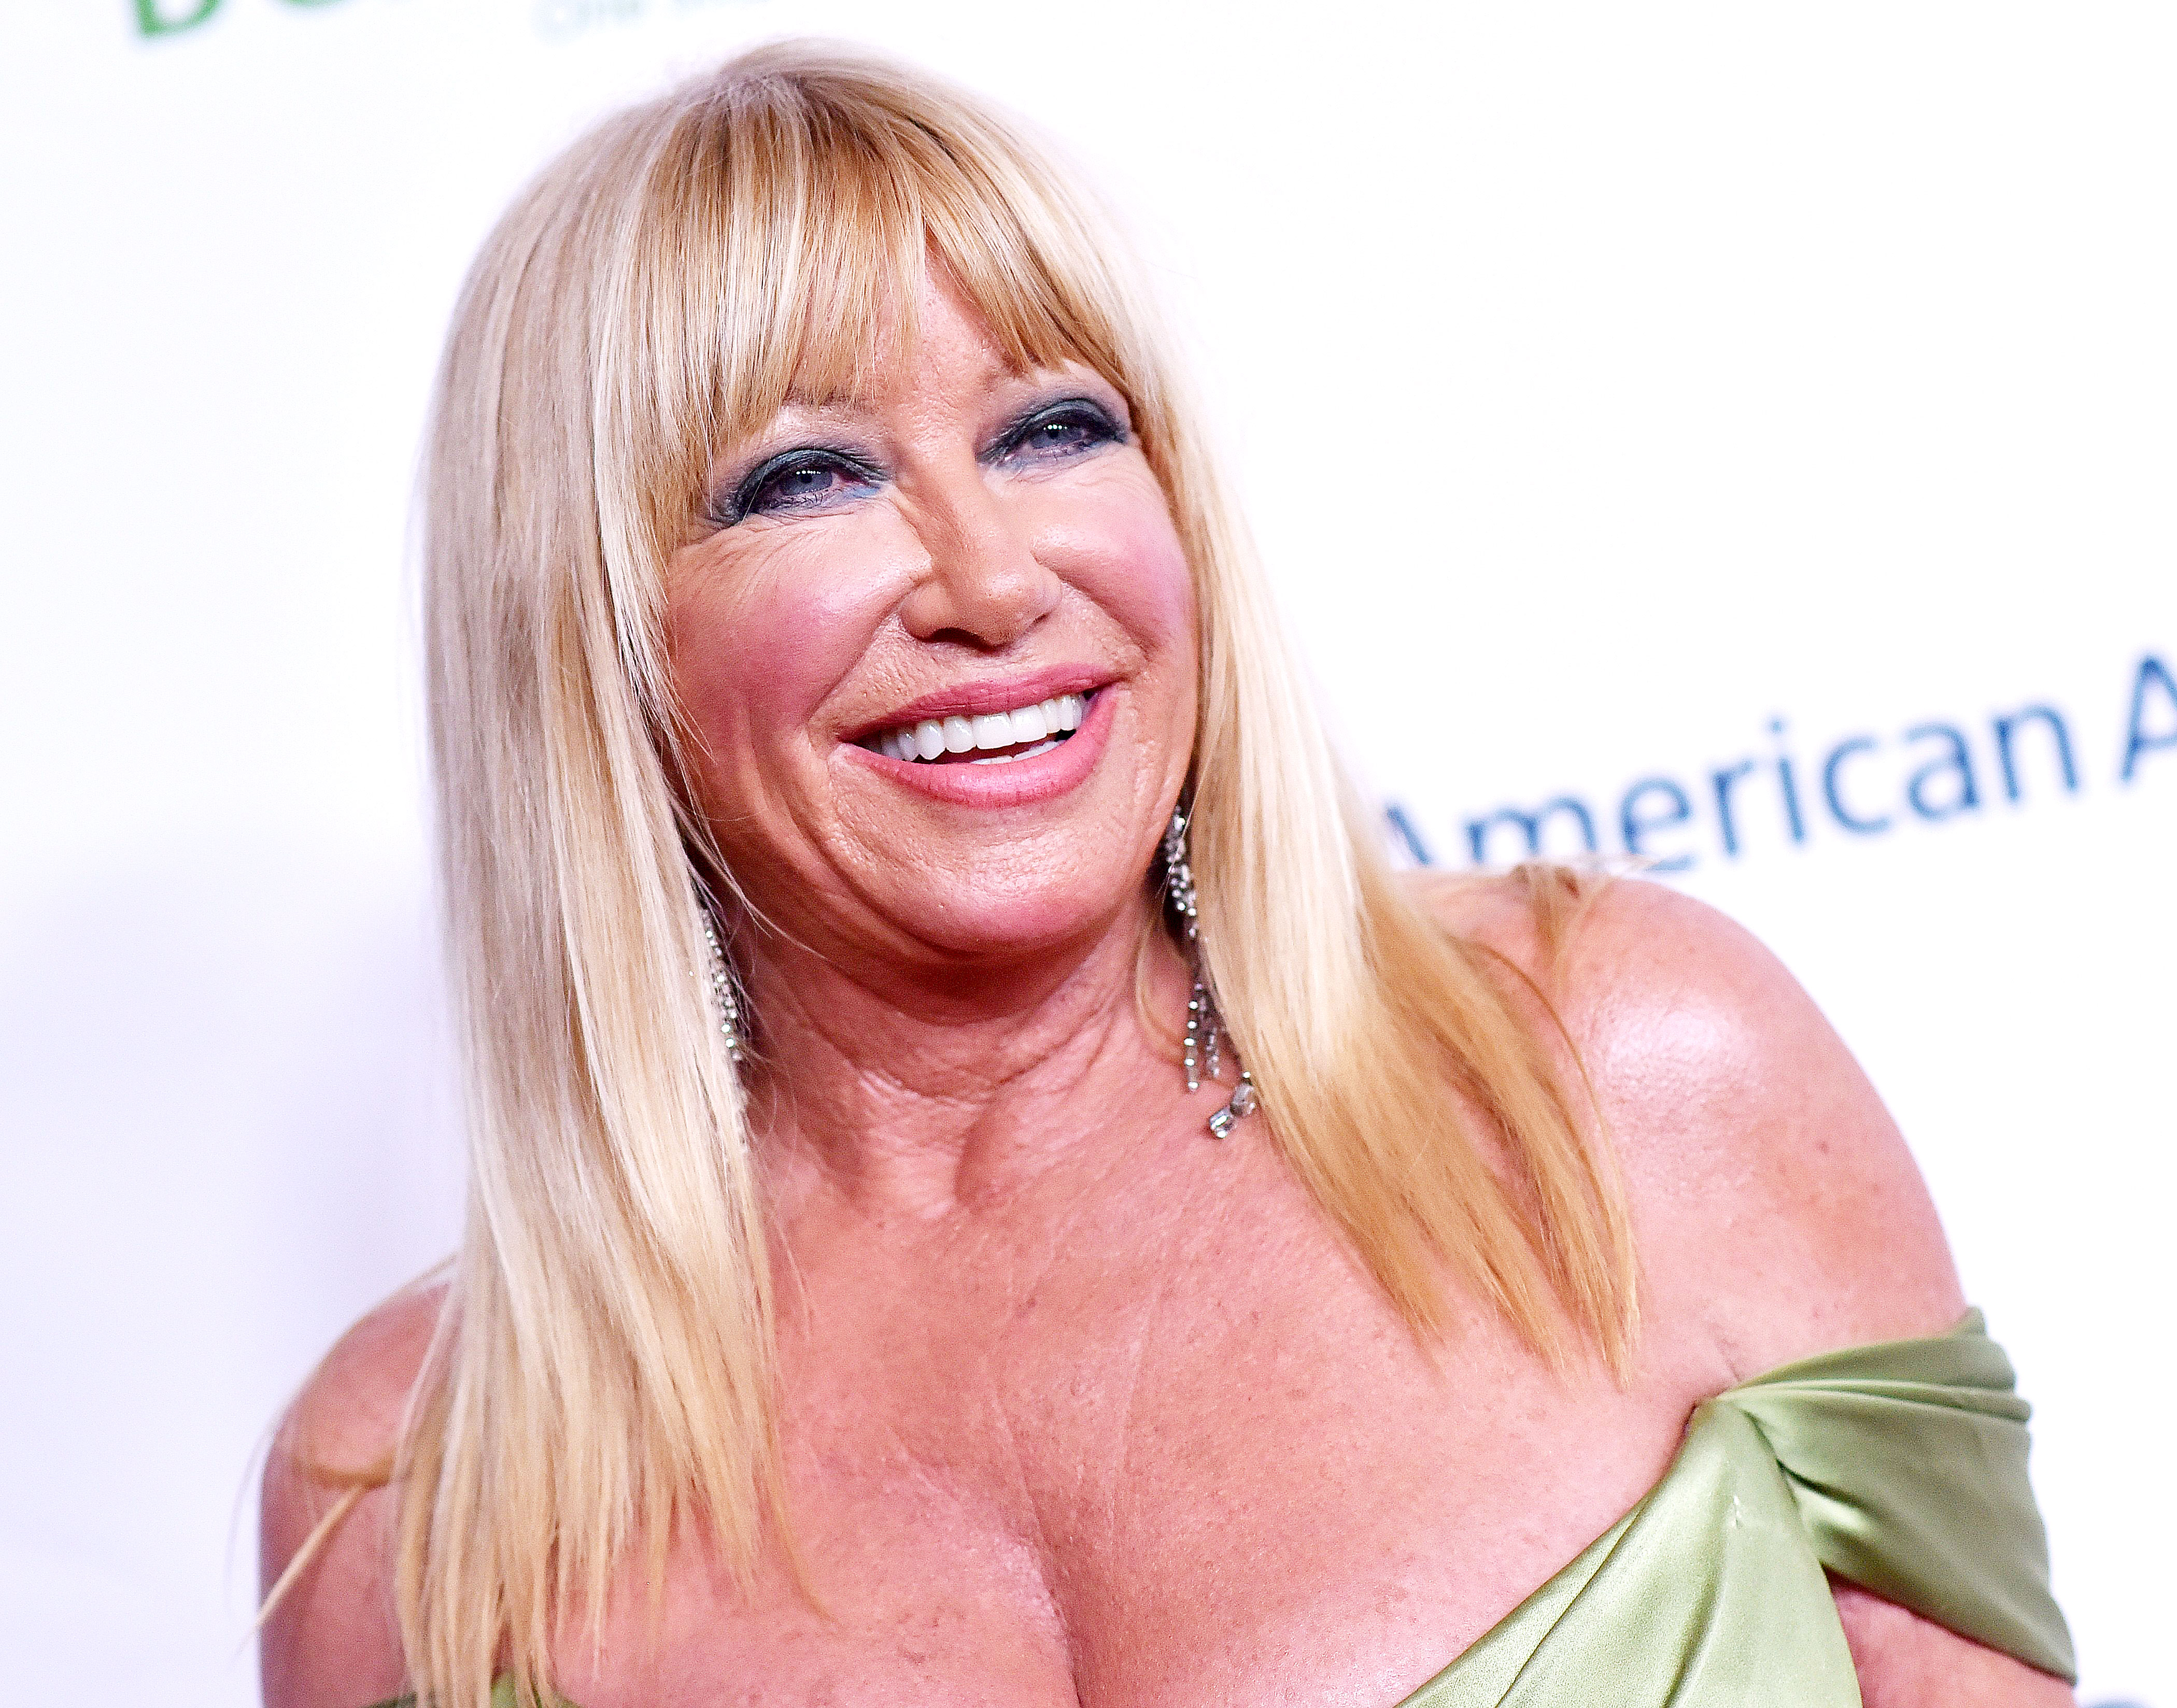 All Nude Image suzanne somers shares nude photo on instagram for 73rd birthday